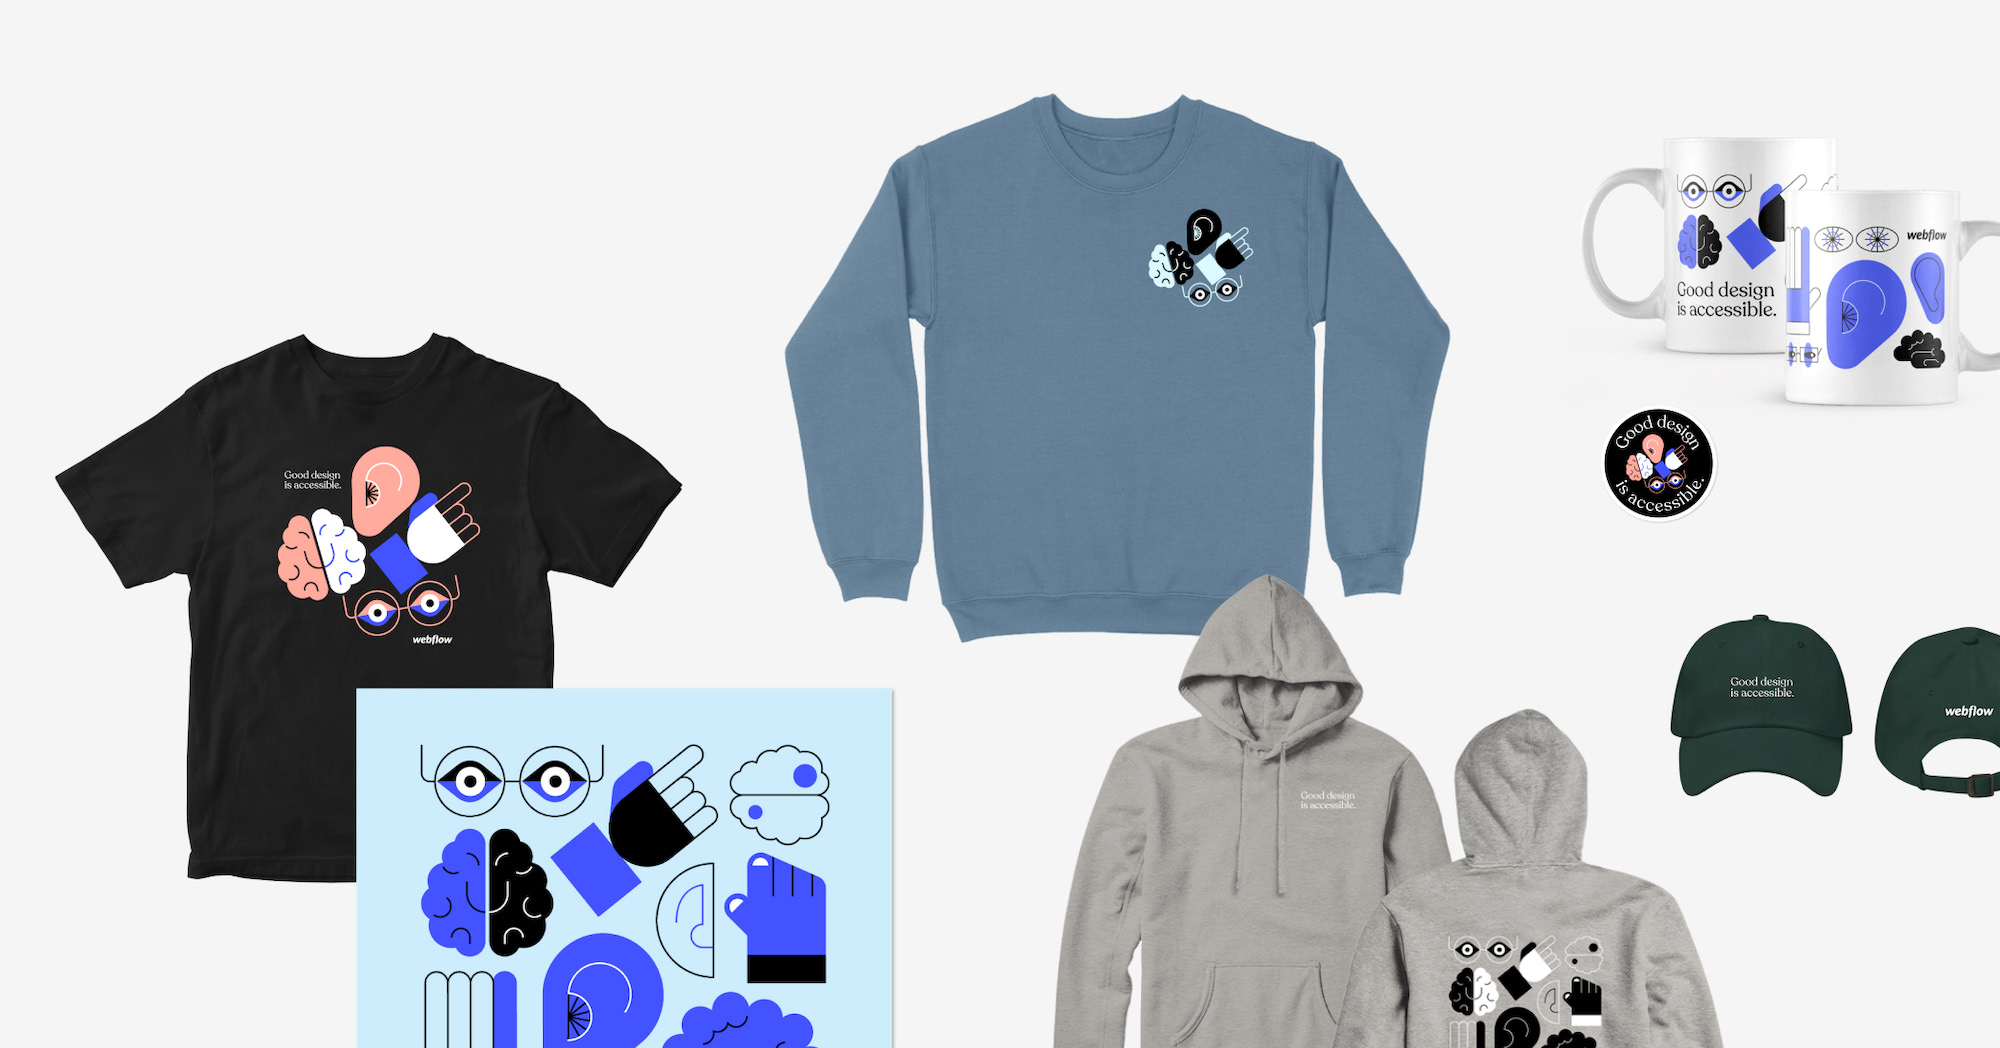 Arrangement of products from collection like a t-shirt, crew neck sweatshirt, poster, mug, sticker, hat and hoodie.